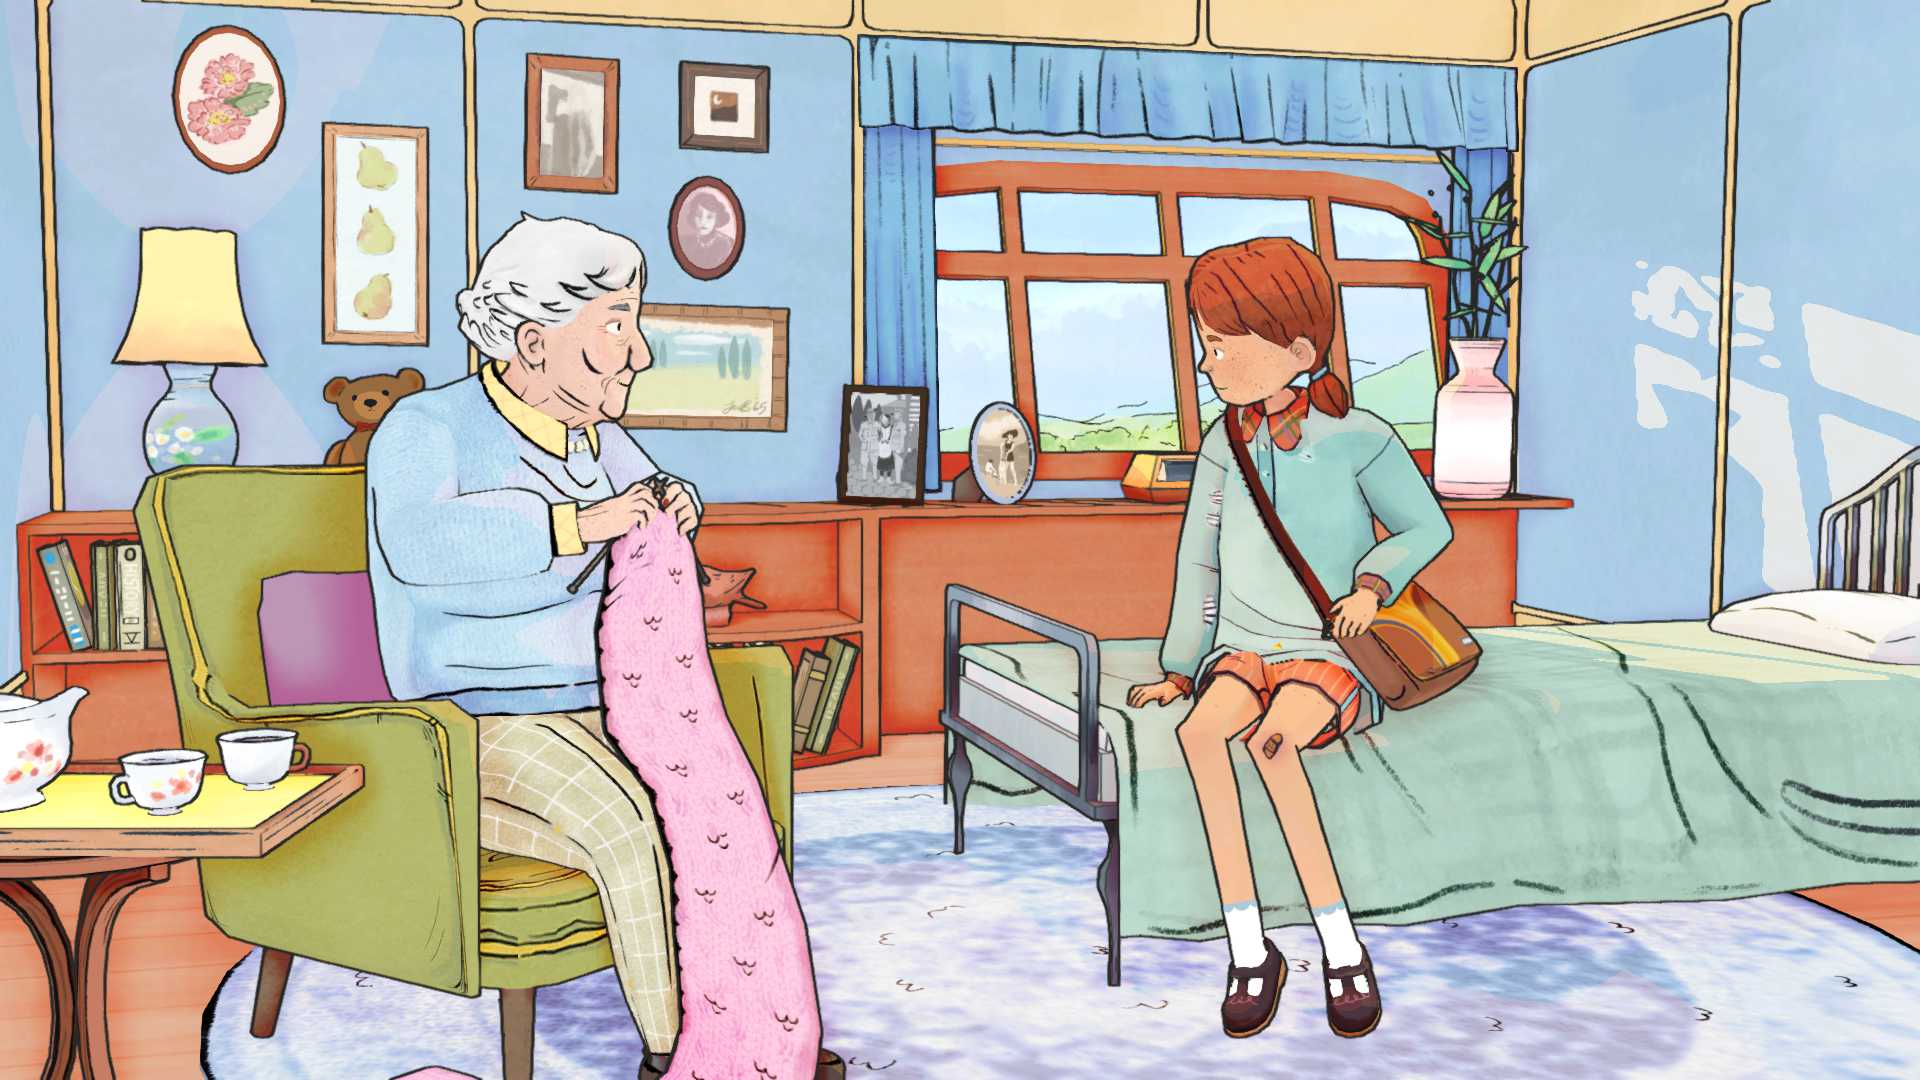 A screenshot from the video game Wayward Strand. An old woman sits in a green chair knitting a pink scarf looking at a girl sitting on the bed next to her.